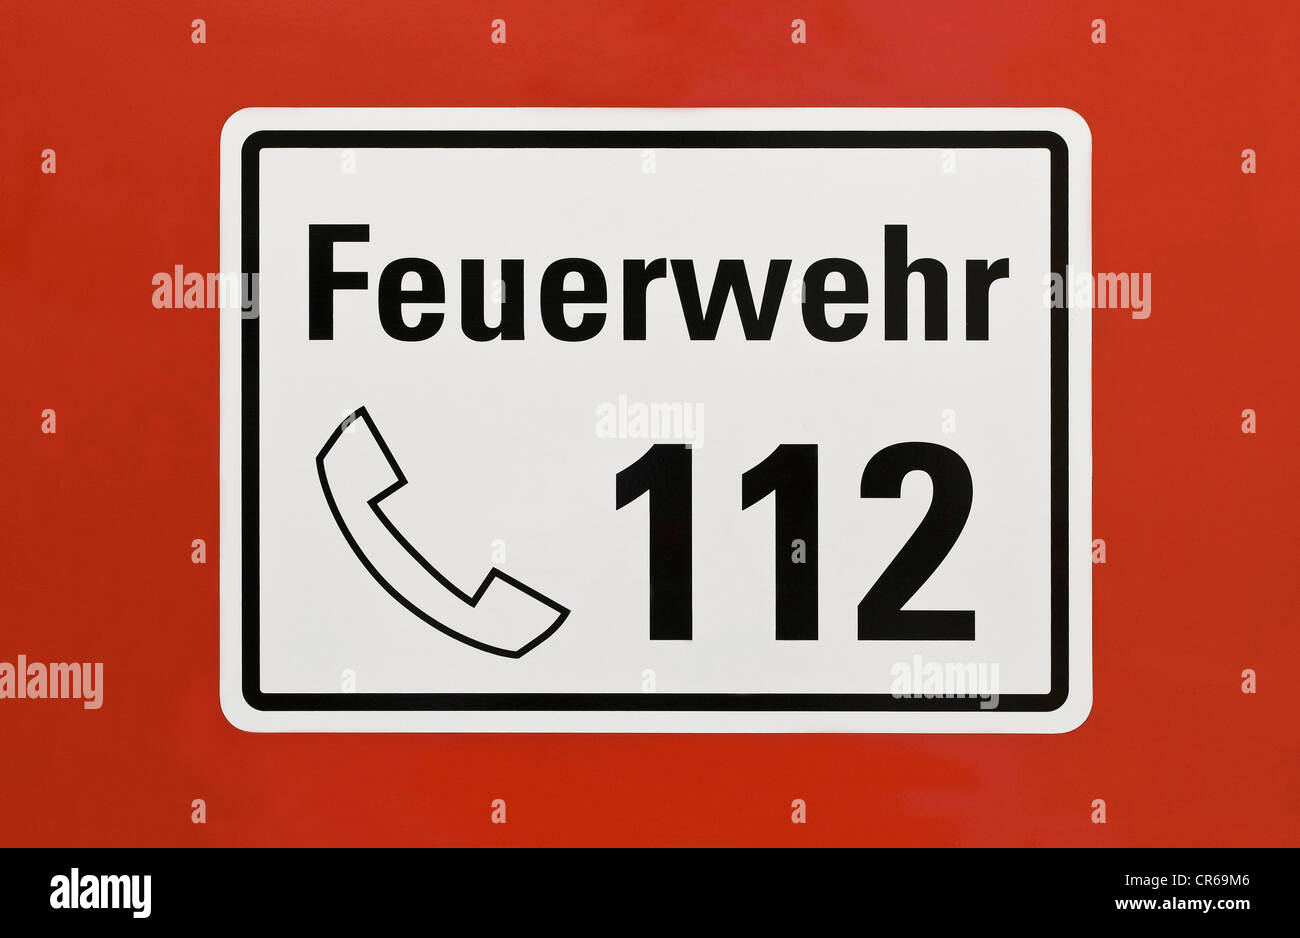 Sign, 'Feuerwehr 112', German for 'fire service 112', emergency telephone number, on a red surface - Stock Image